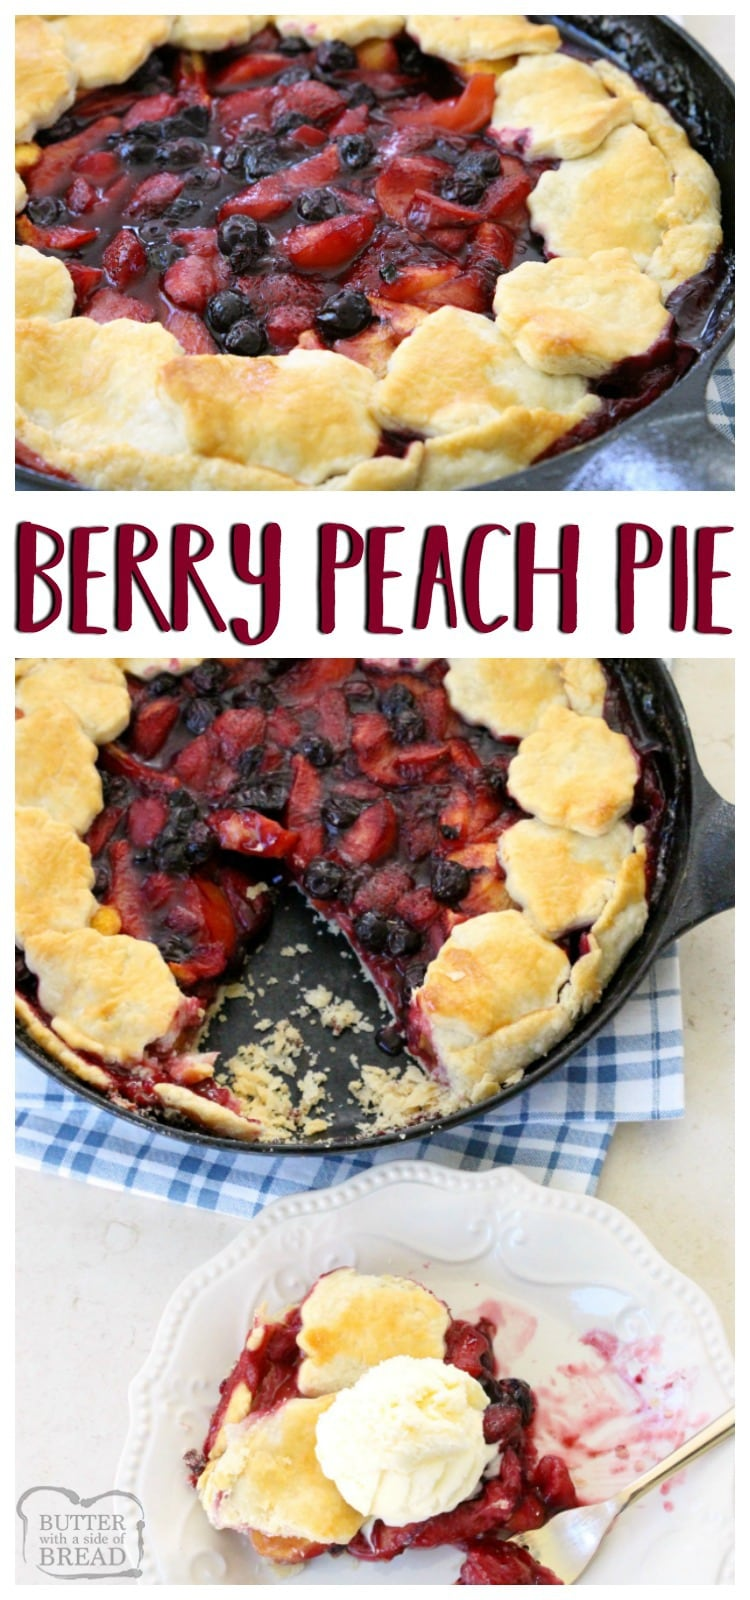 Berry Peach Pie is the perfect summer pie recipe! Simple to make with an easy crust & filled with sweet fresh fruit then topped with vanilla ice cream.